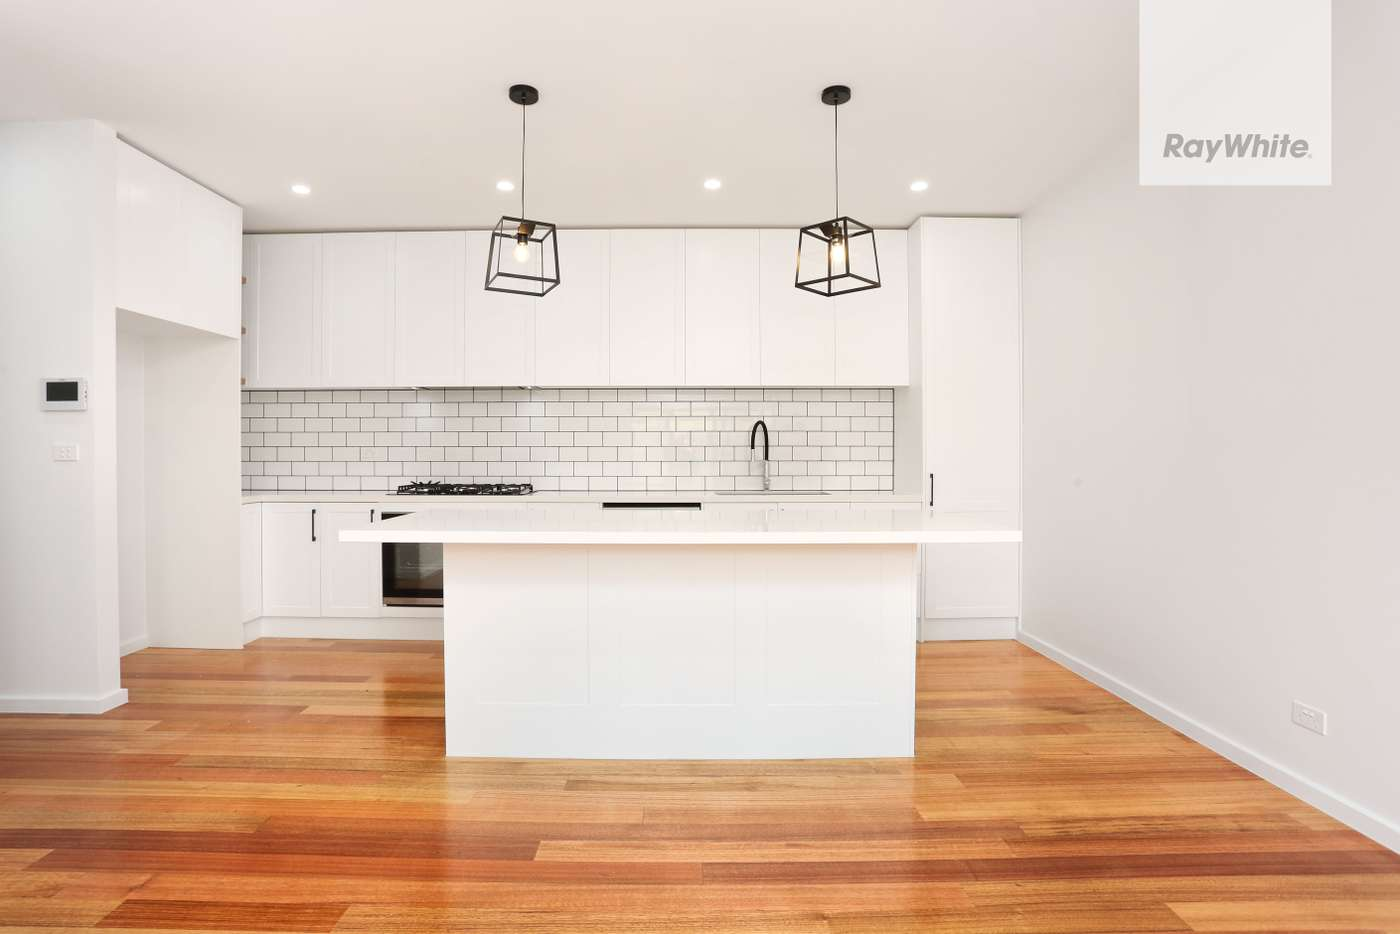 Main view of Homely unit listing, 3/78 Justin Avenue, Glenroy, VIC 3046